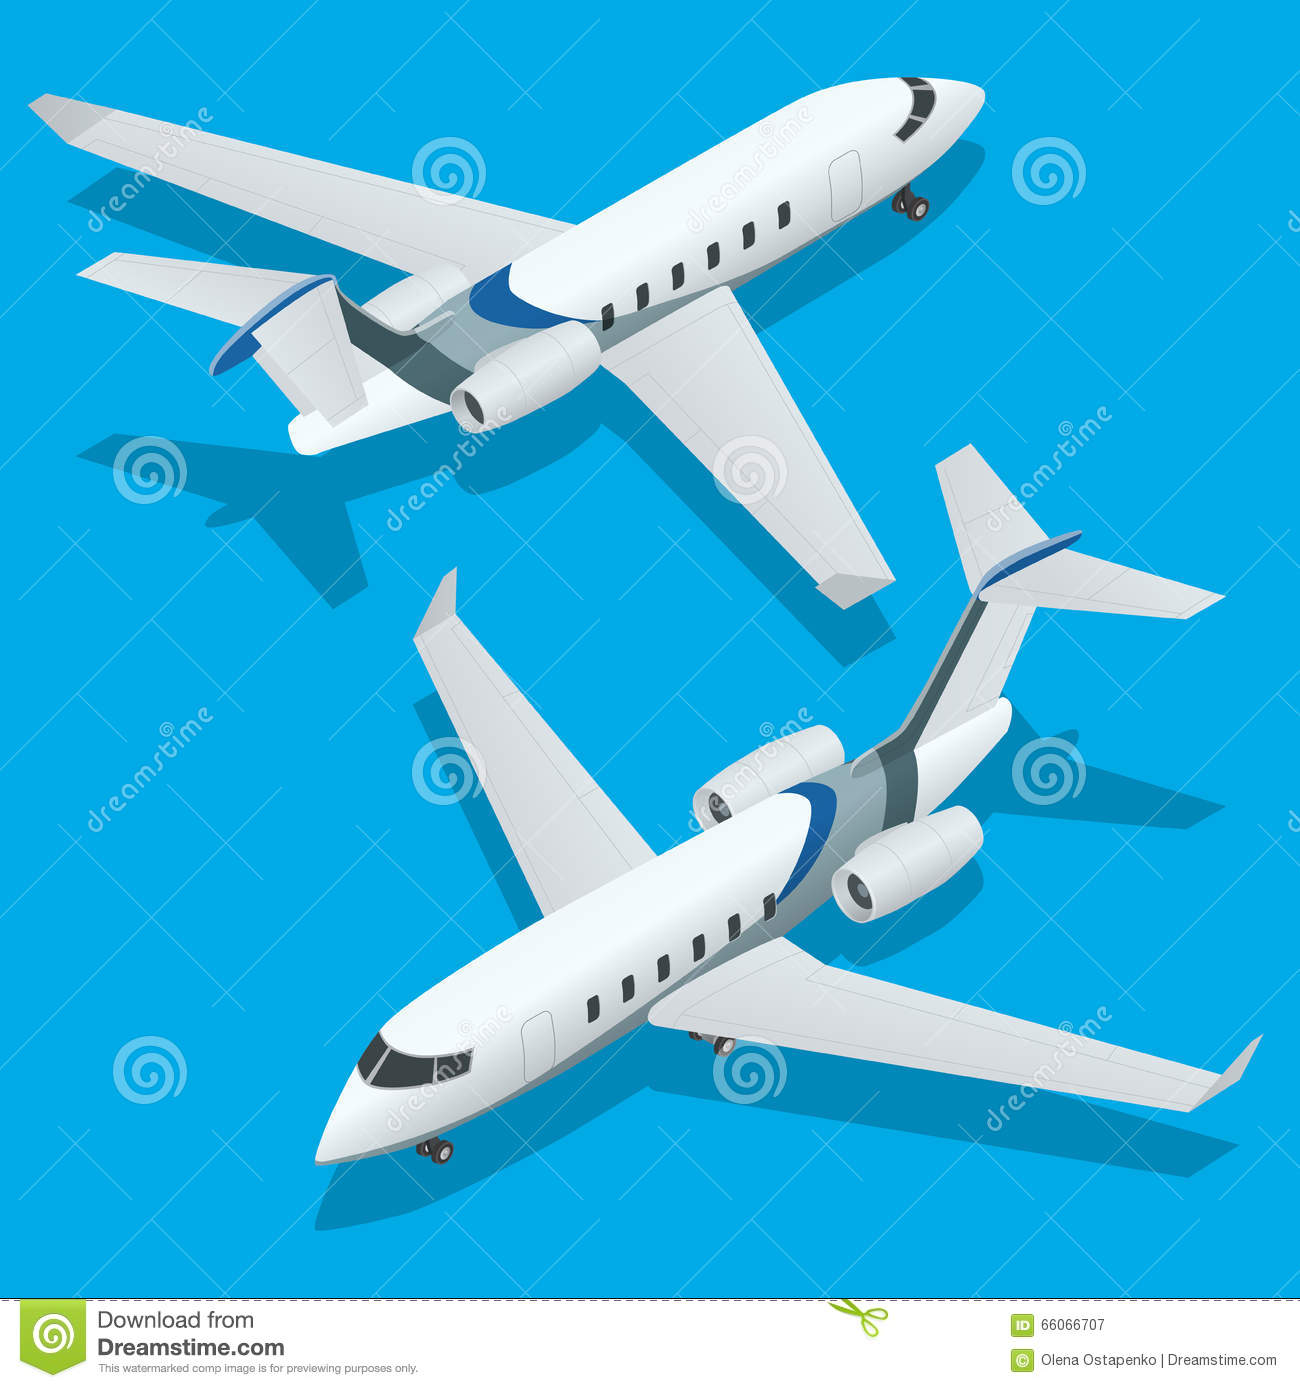 corporate social responsibility airplanes and airline Programs key words: corporate social responsibility, sustainability, airlines,   ers went bankrupt due to the high surplus of airplanes and consequently the pro.